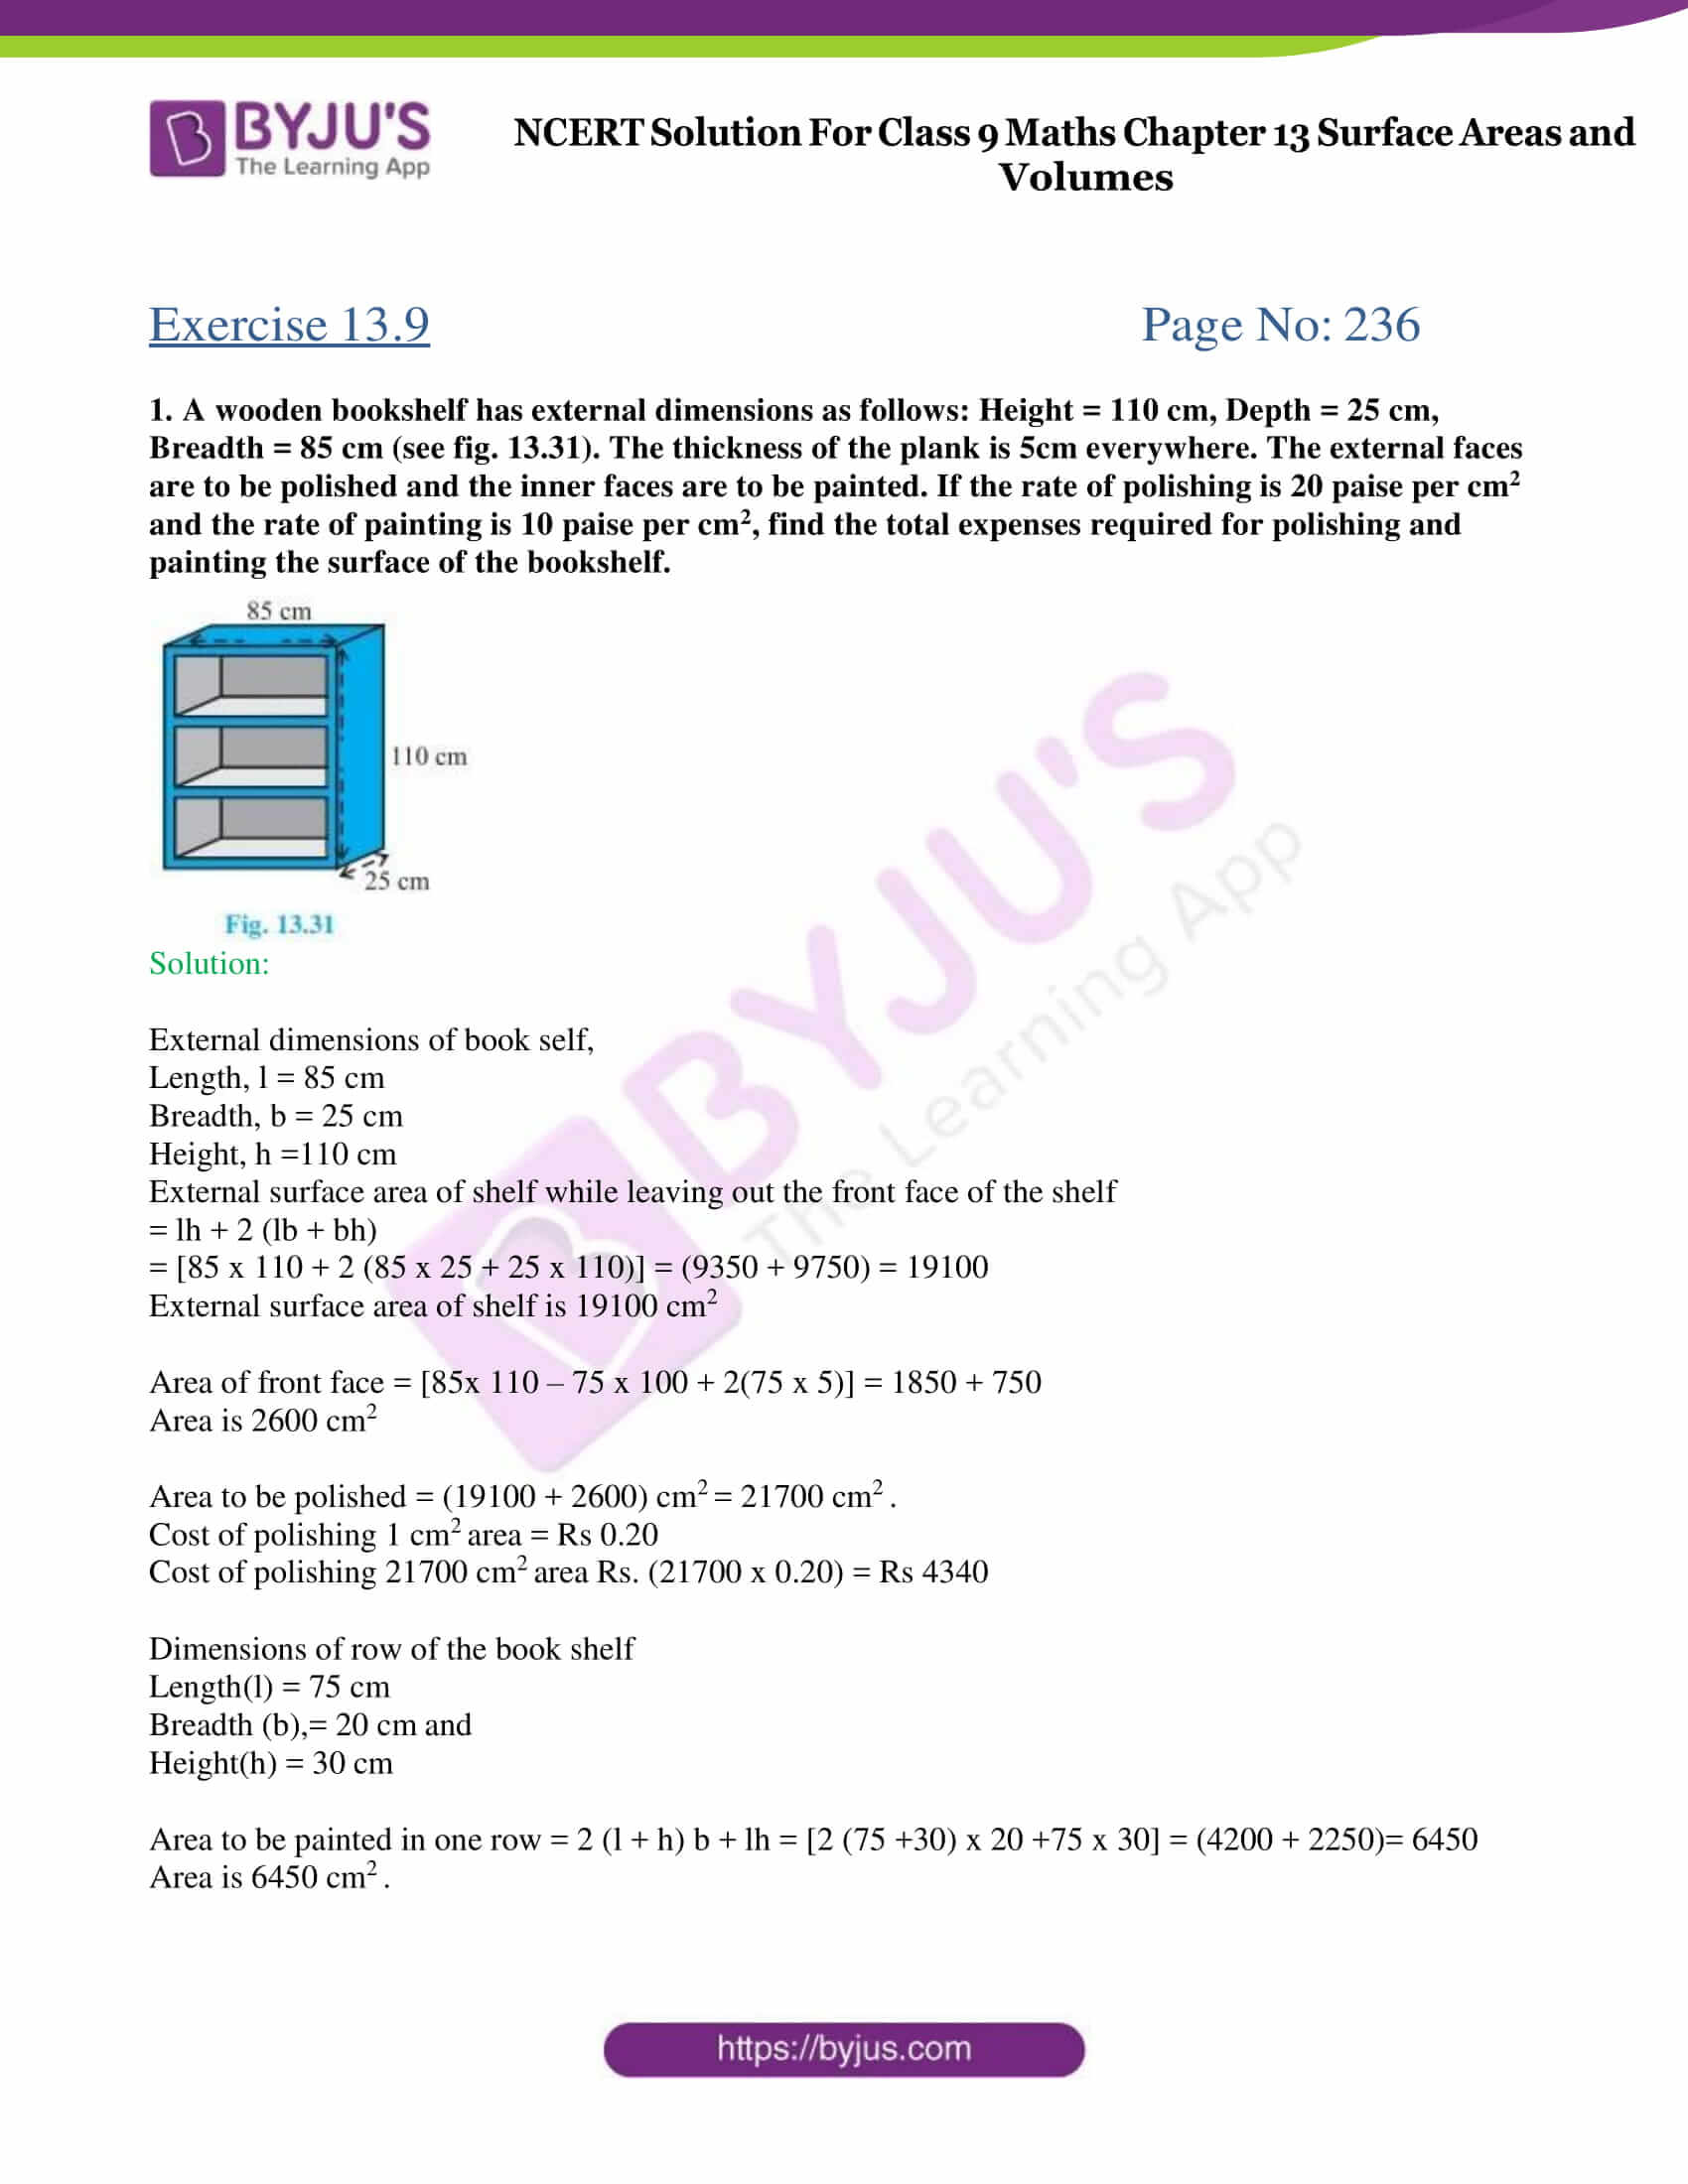 ncert solutions for class 9 maths chapter 13 exercise 13.1